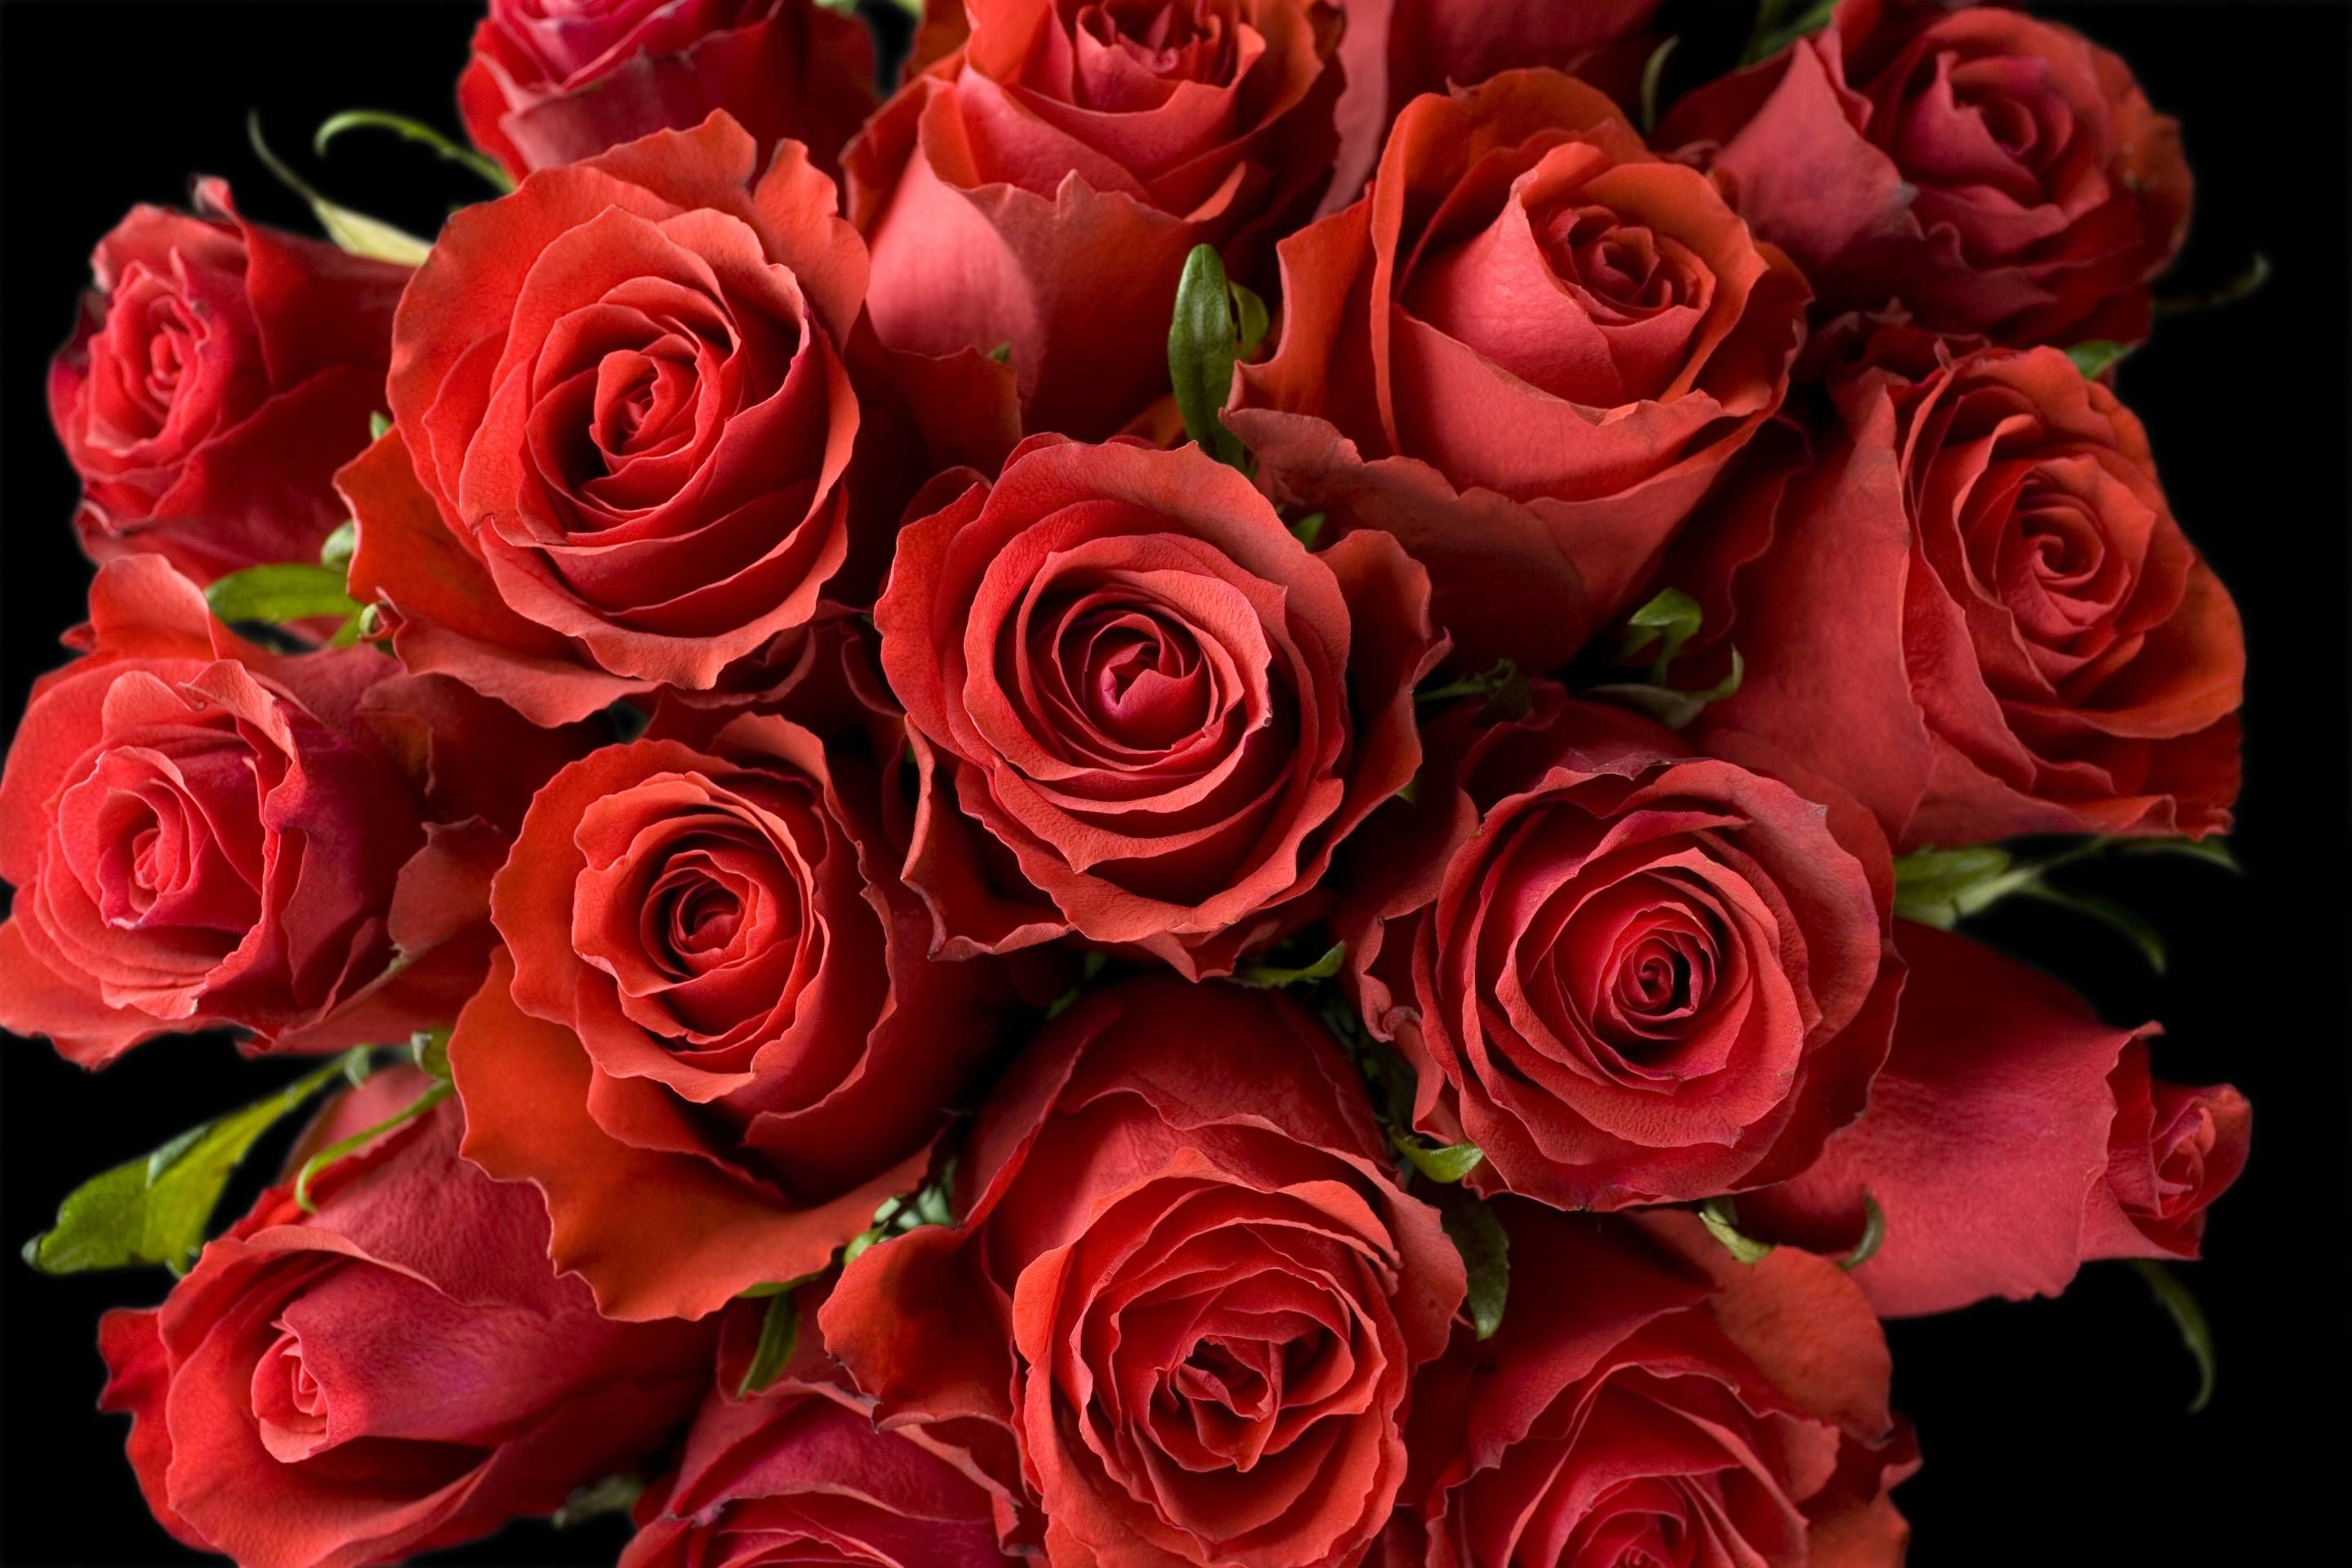 You Can Get Two Dozen Roses for Less Than $20 Thanks to Whole Foods and Amazon